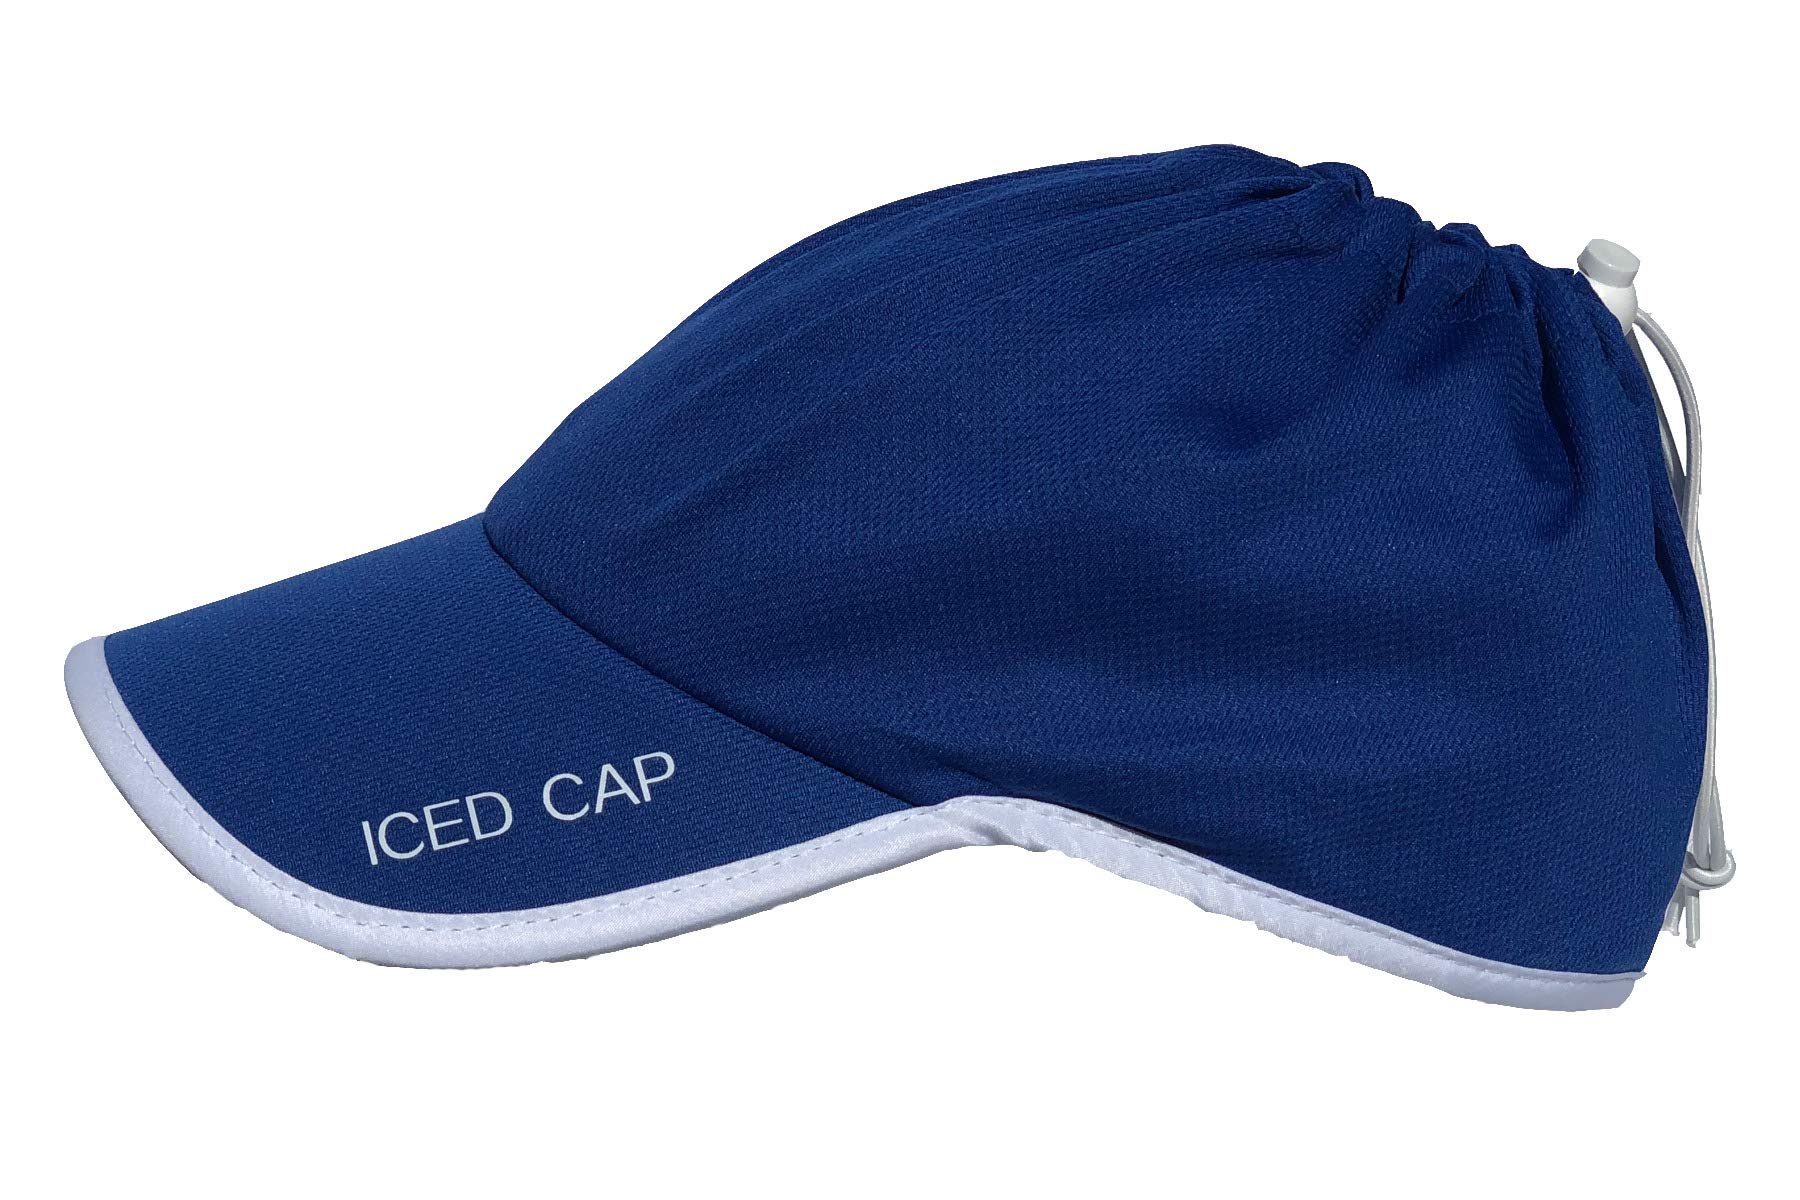 ICED Cap- Cooling Hat For Ice (4.0- Royal Blue)